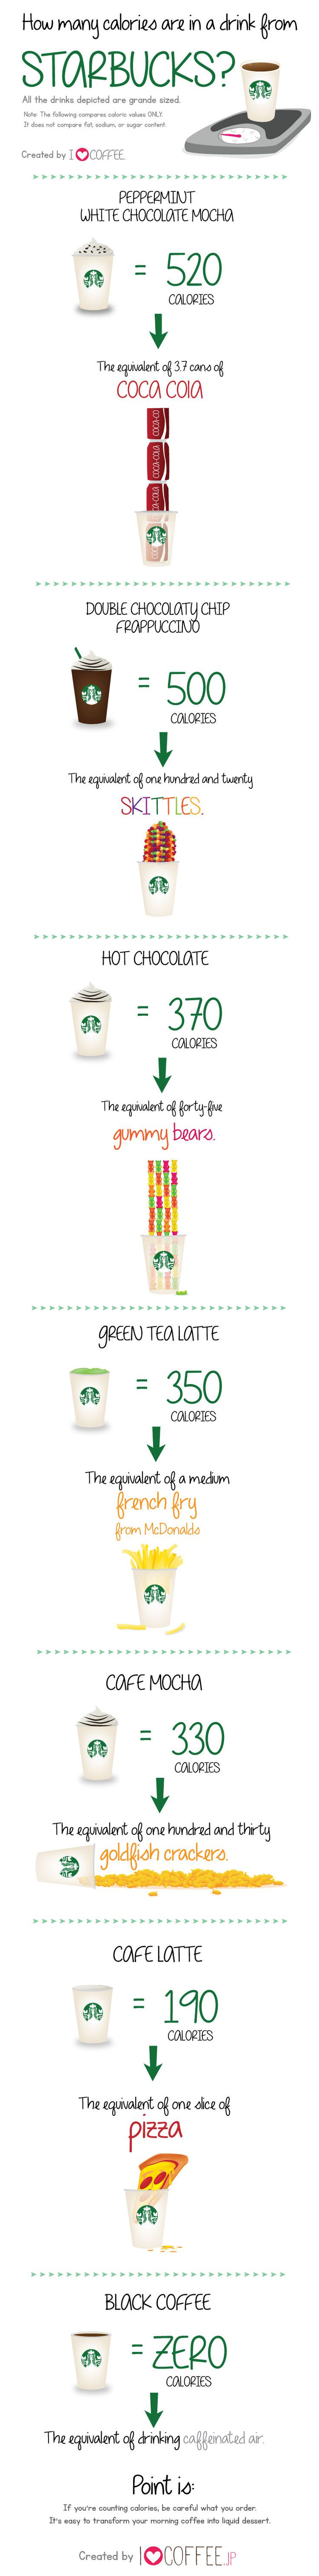 How Many Calories Are In A Drink From Starbucks